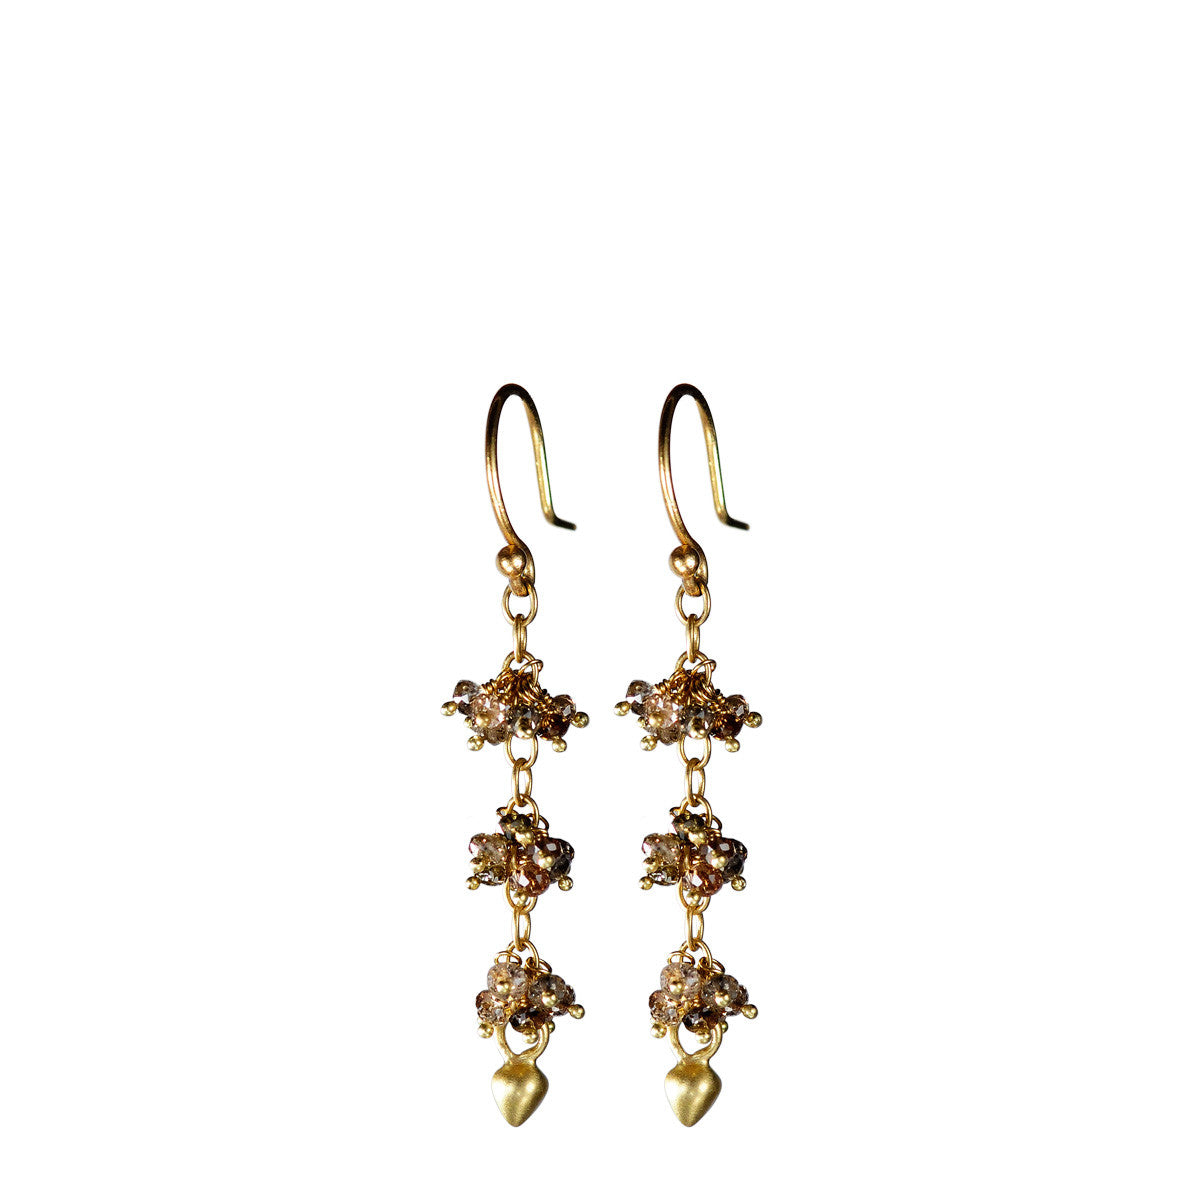 18K Gold 3 Beaded Brown Diamond Cluster Earrings with Lotus Buds